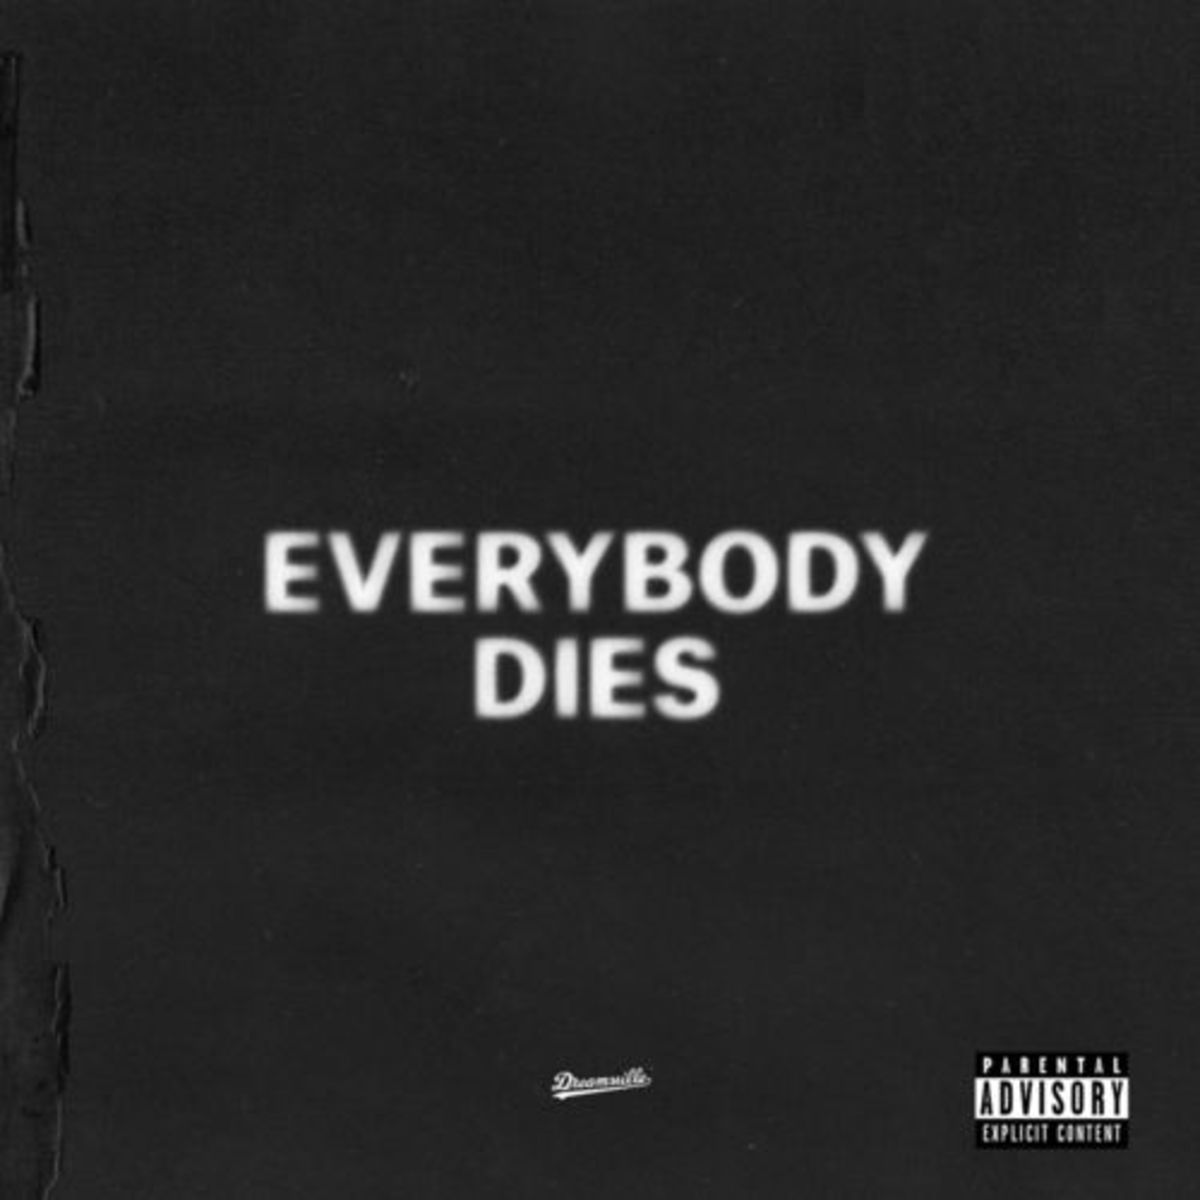 j-cole-everybody-dies.jpg